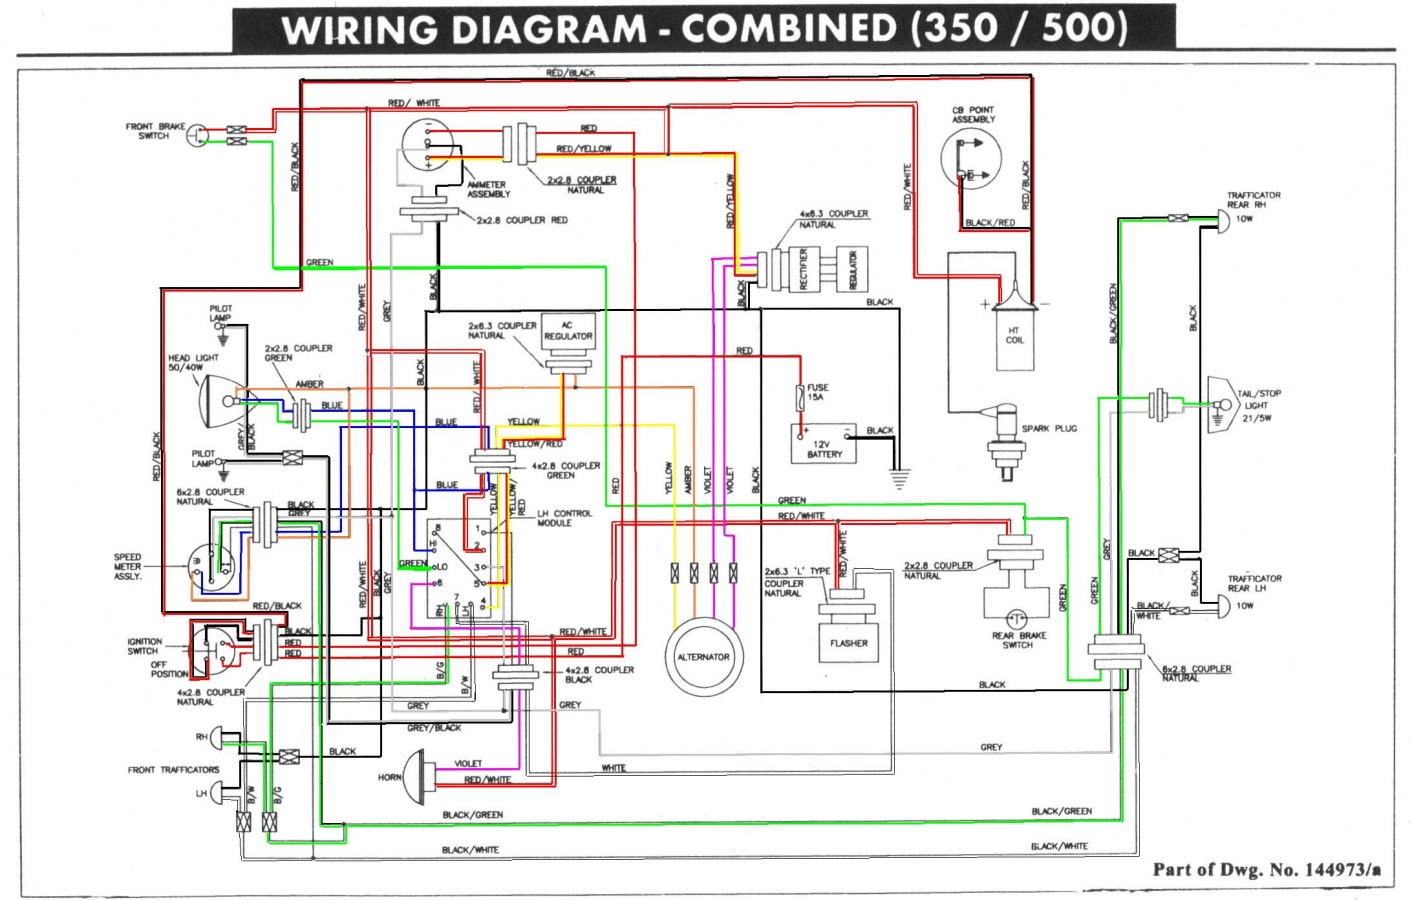 diagrams 875667 royal enfield 350 wiring diagram royal enfield royal enfield wiring diagrams at pacquiaovsvargaslive.co